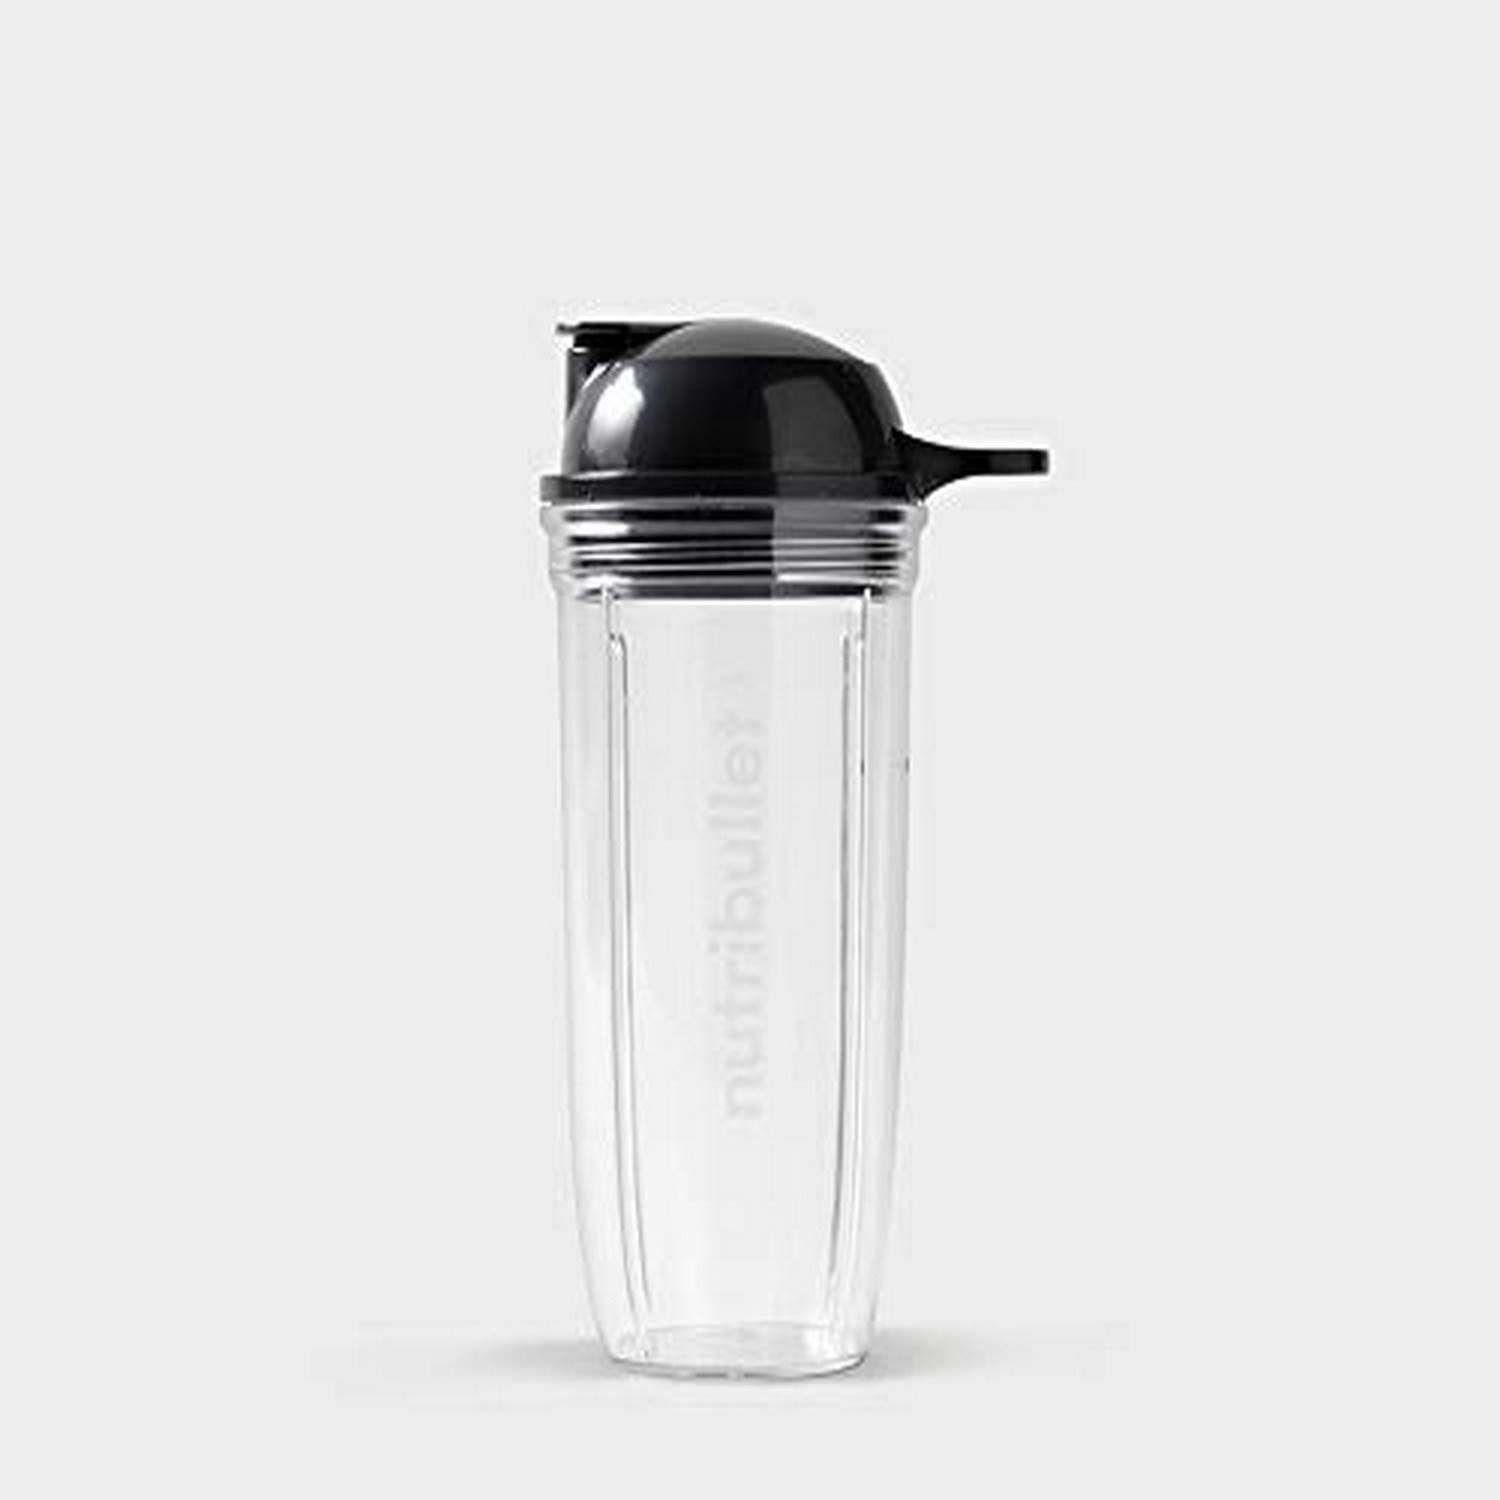 NutriBullet 24 oz Cup with To-Go Lid, Clear/Black